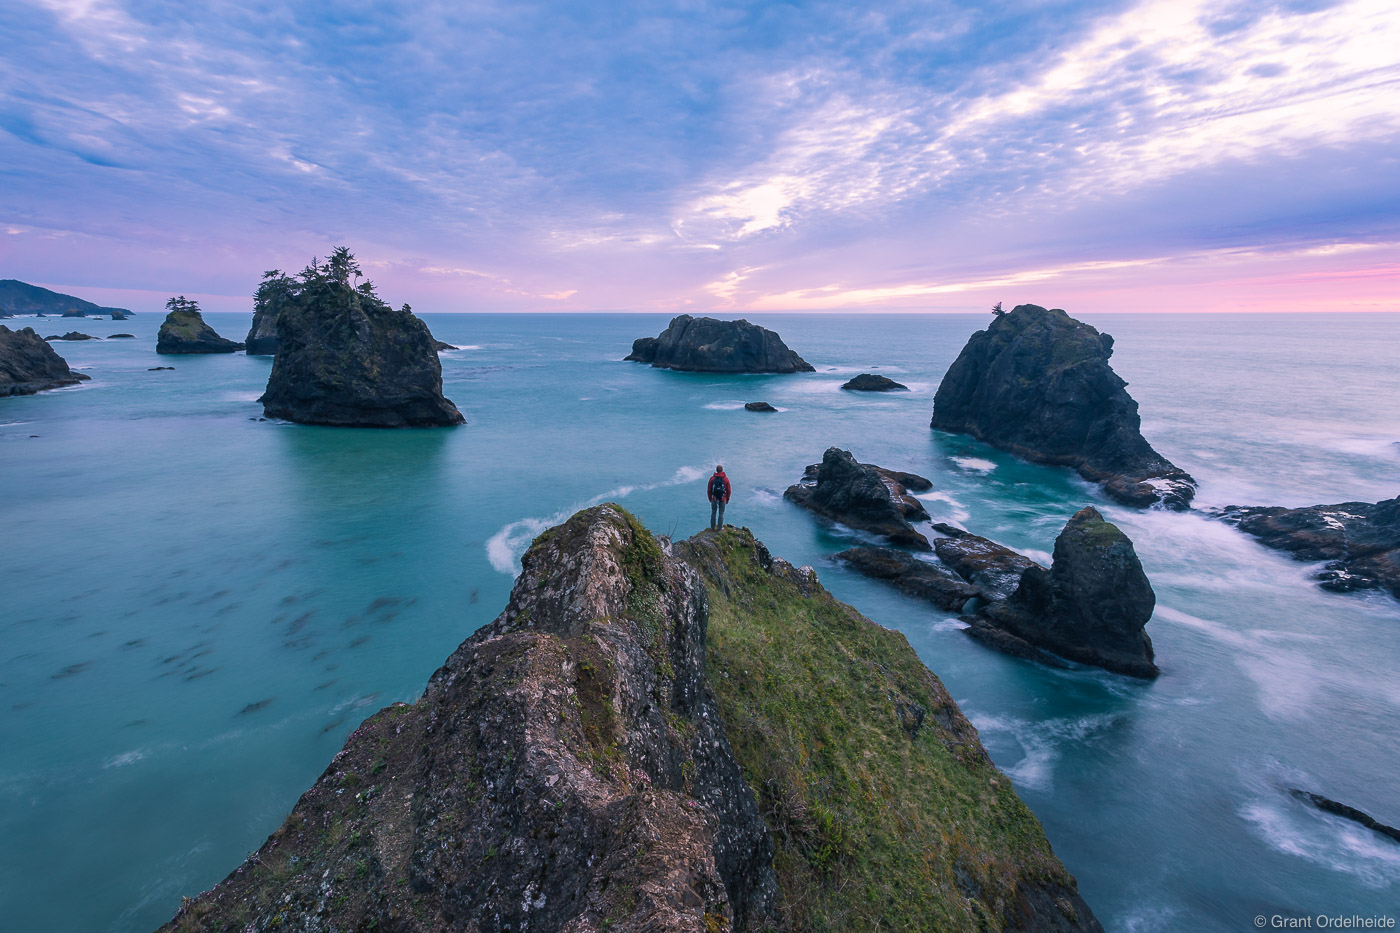 dusk, brookings, oregon, hiker, rugged, samuel boardman, scenic, sourthern, coast, photo